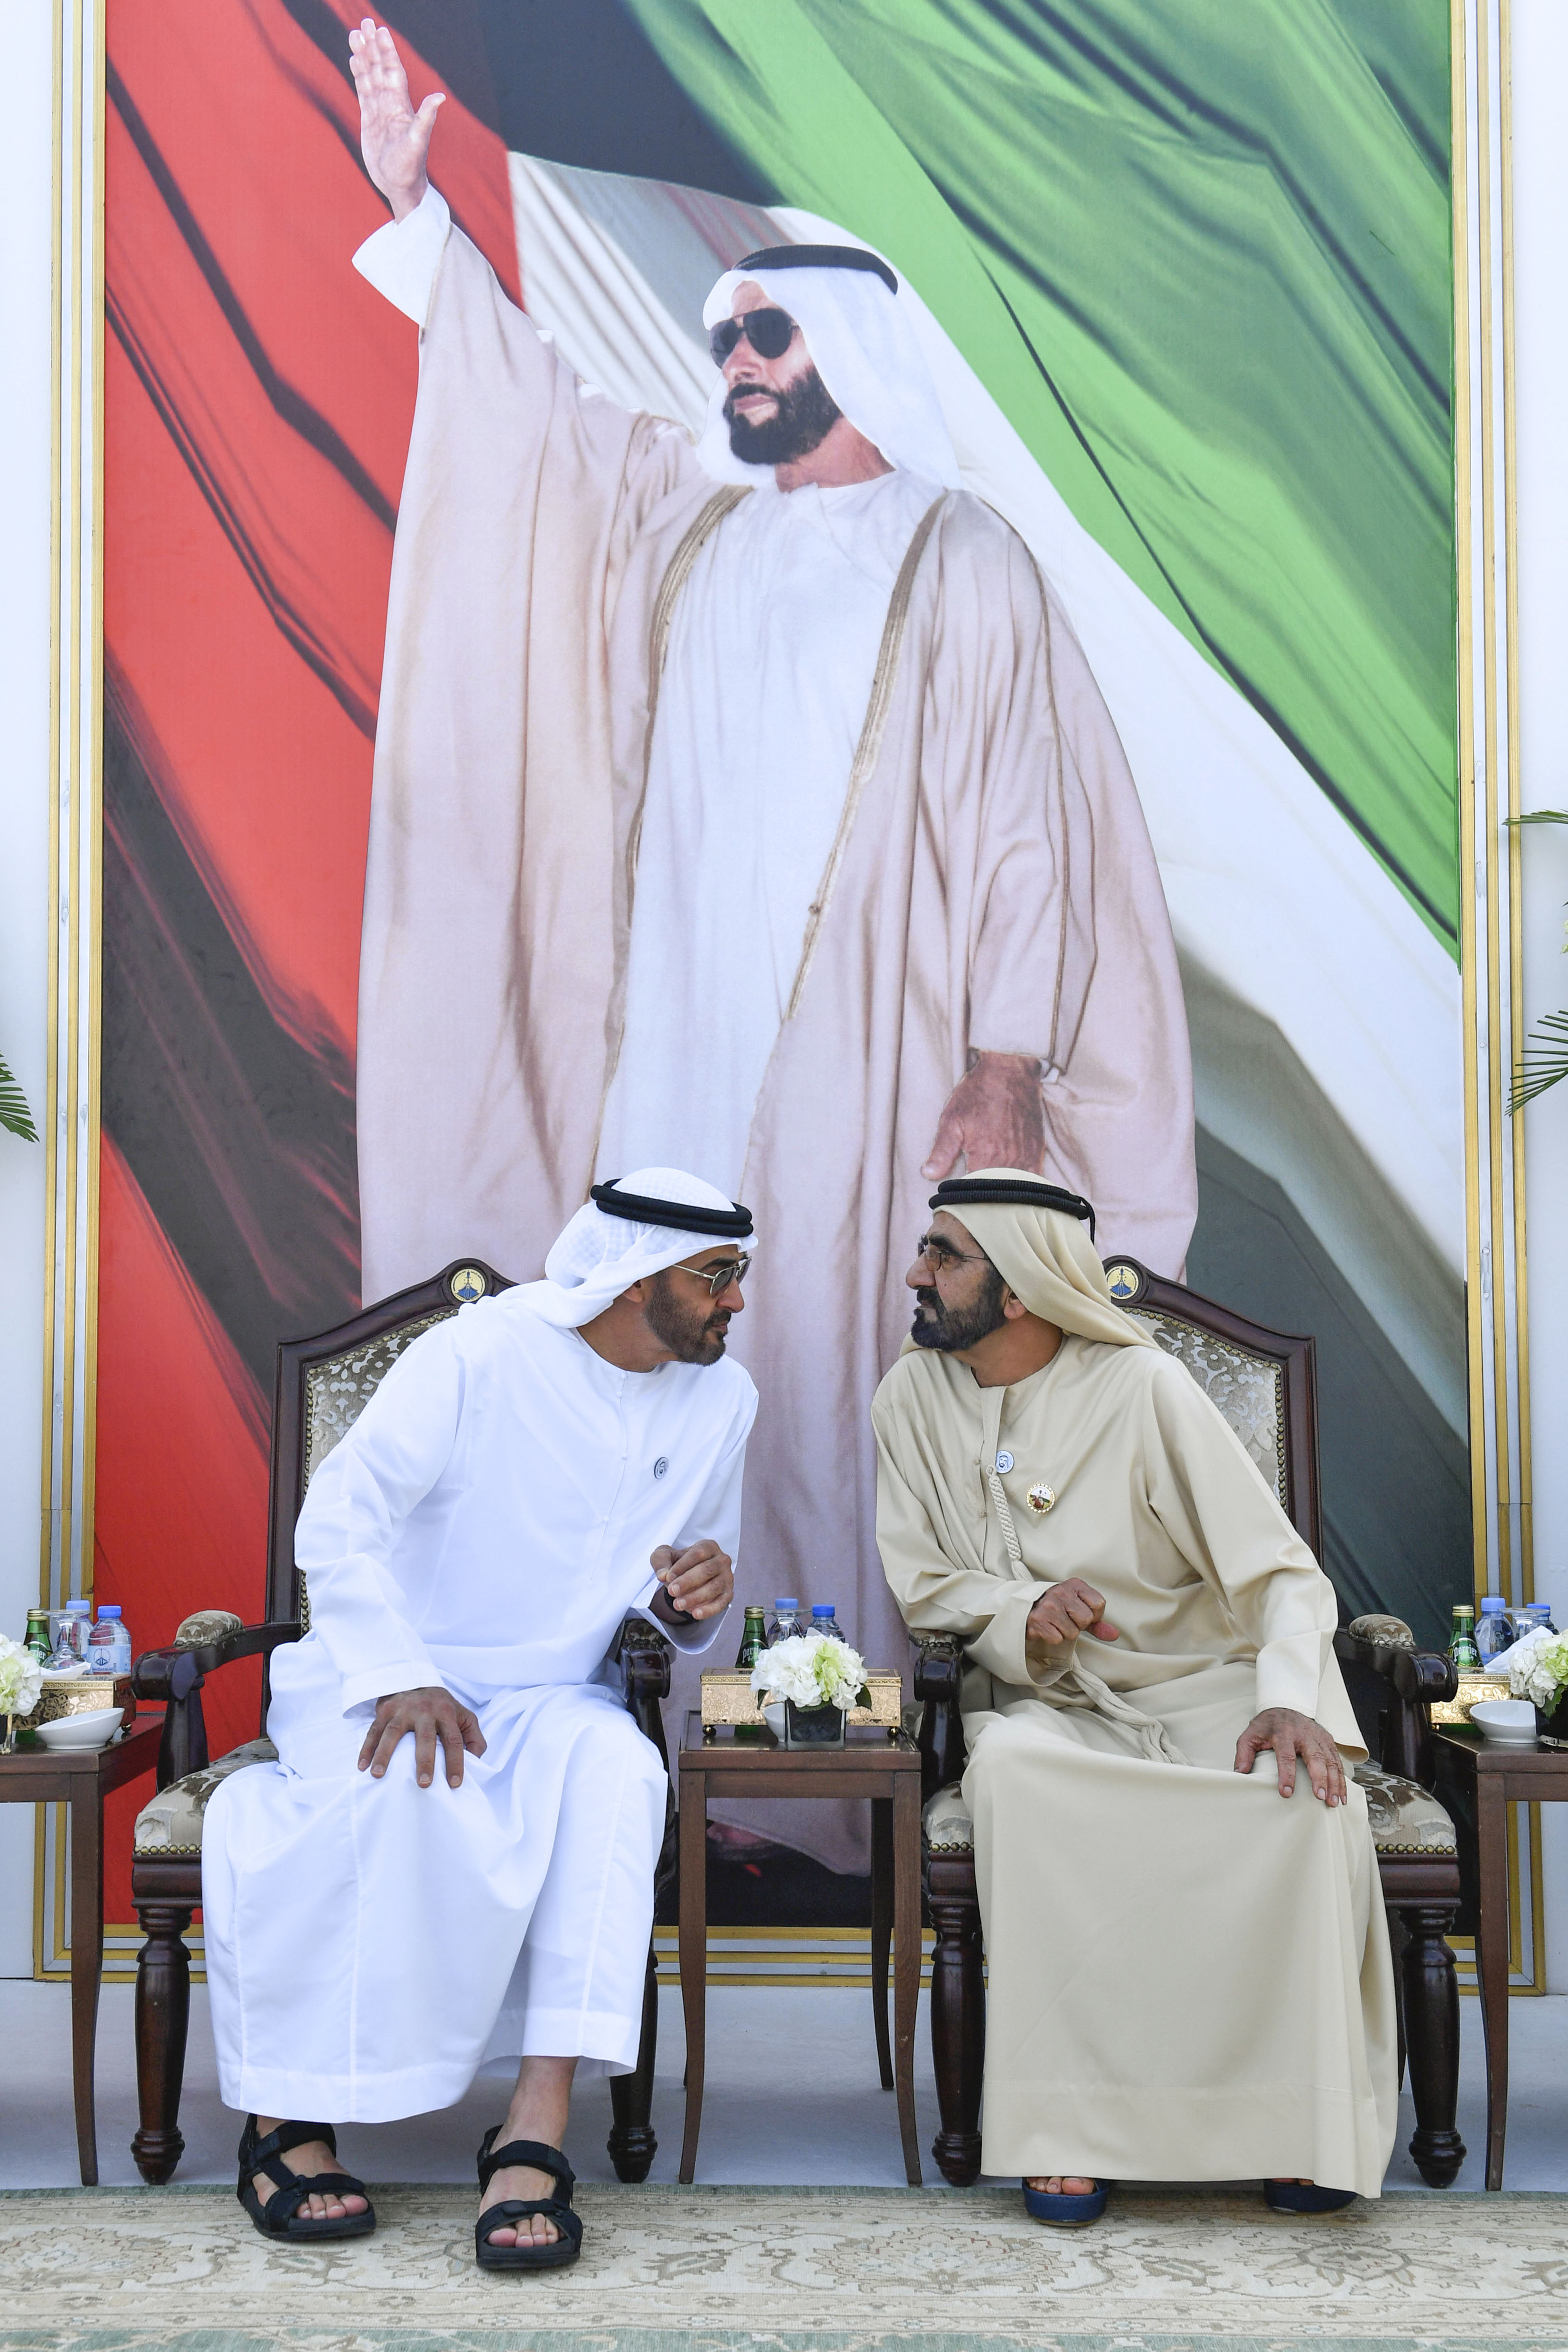 His Highness Sheikh Mohammed bin Rashid Al Maktoum - Mohammed bin Rashid, Mohamed bin Zayed: People are centre of government work